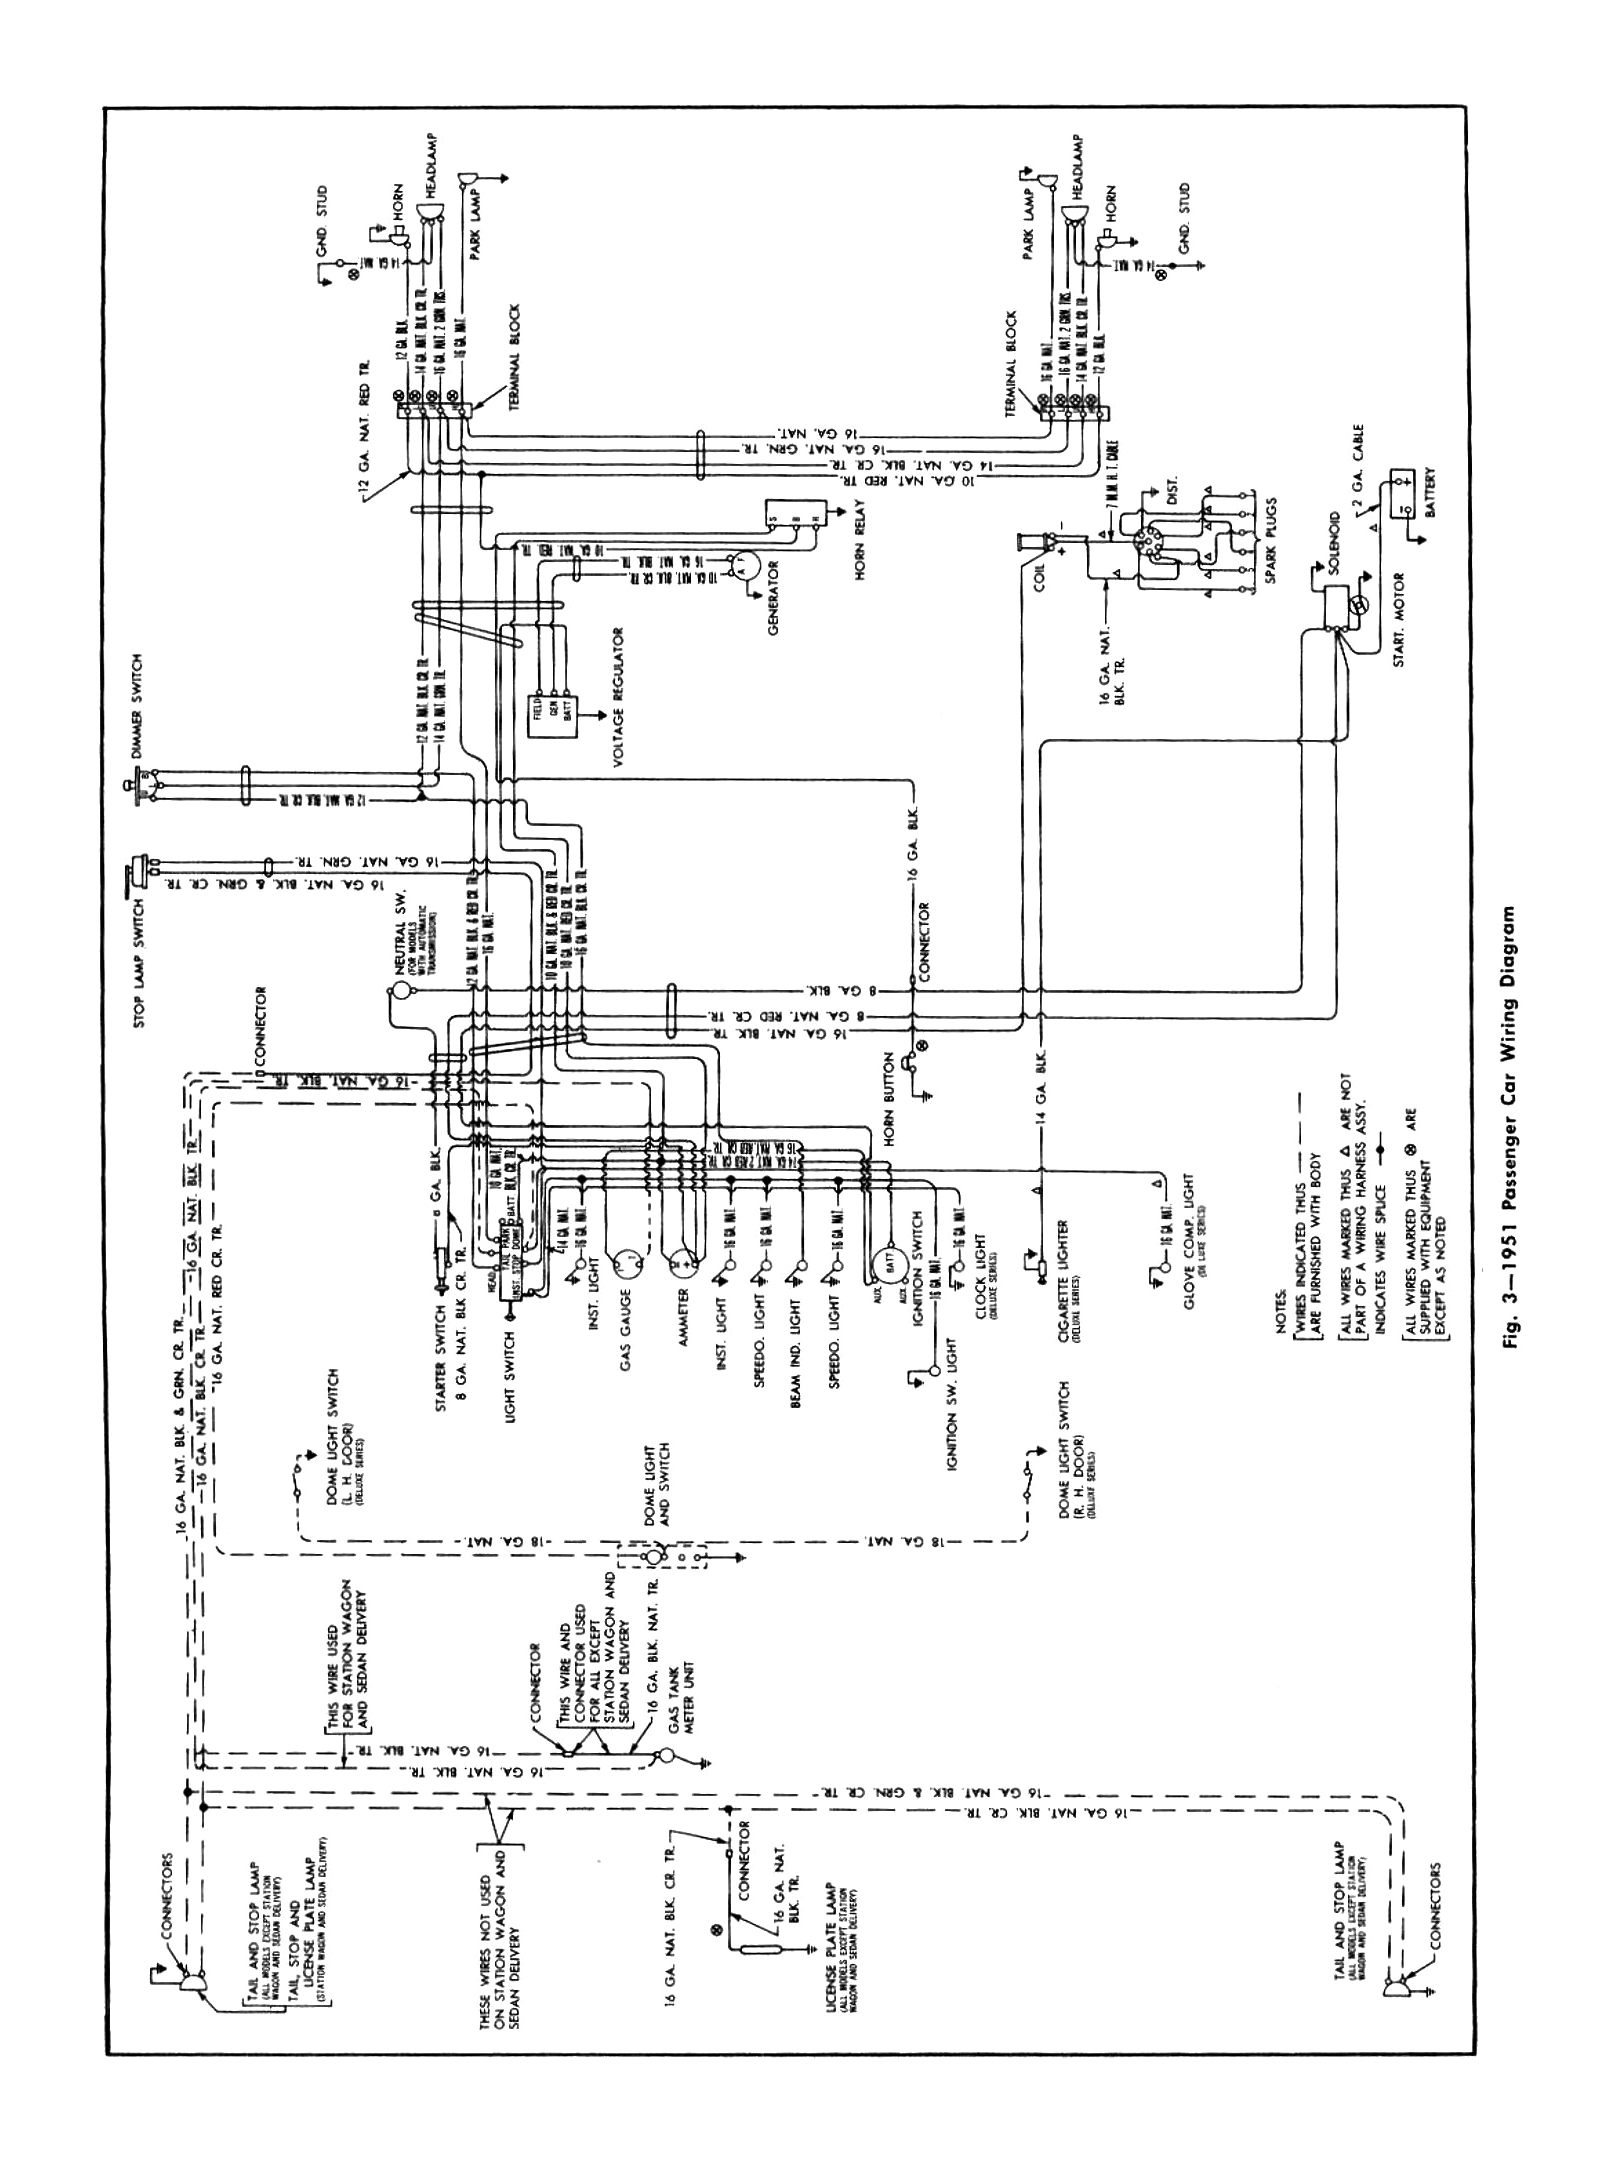 hight resolution of 1951 pontiac wiring diagram wiring diagram pass 1951 pontiac wiring harness